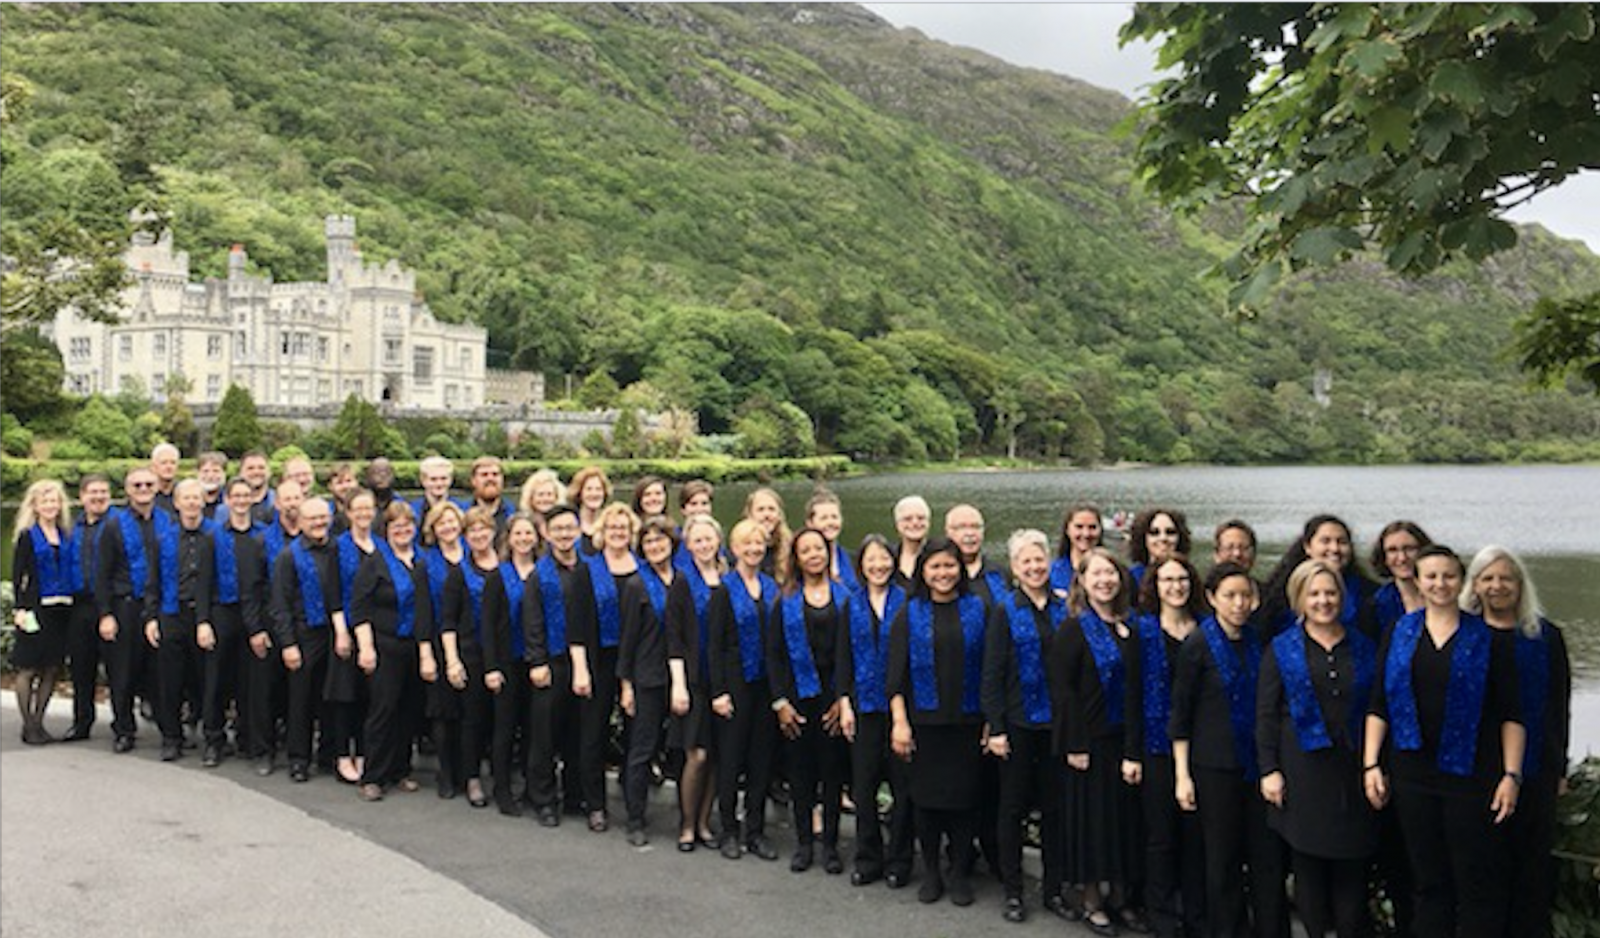 For the Love of Ireland!. The Northwest Firelight Chorale, Kylemore Abbey, Ireland, Summer 2018